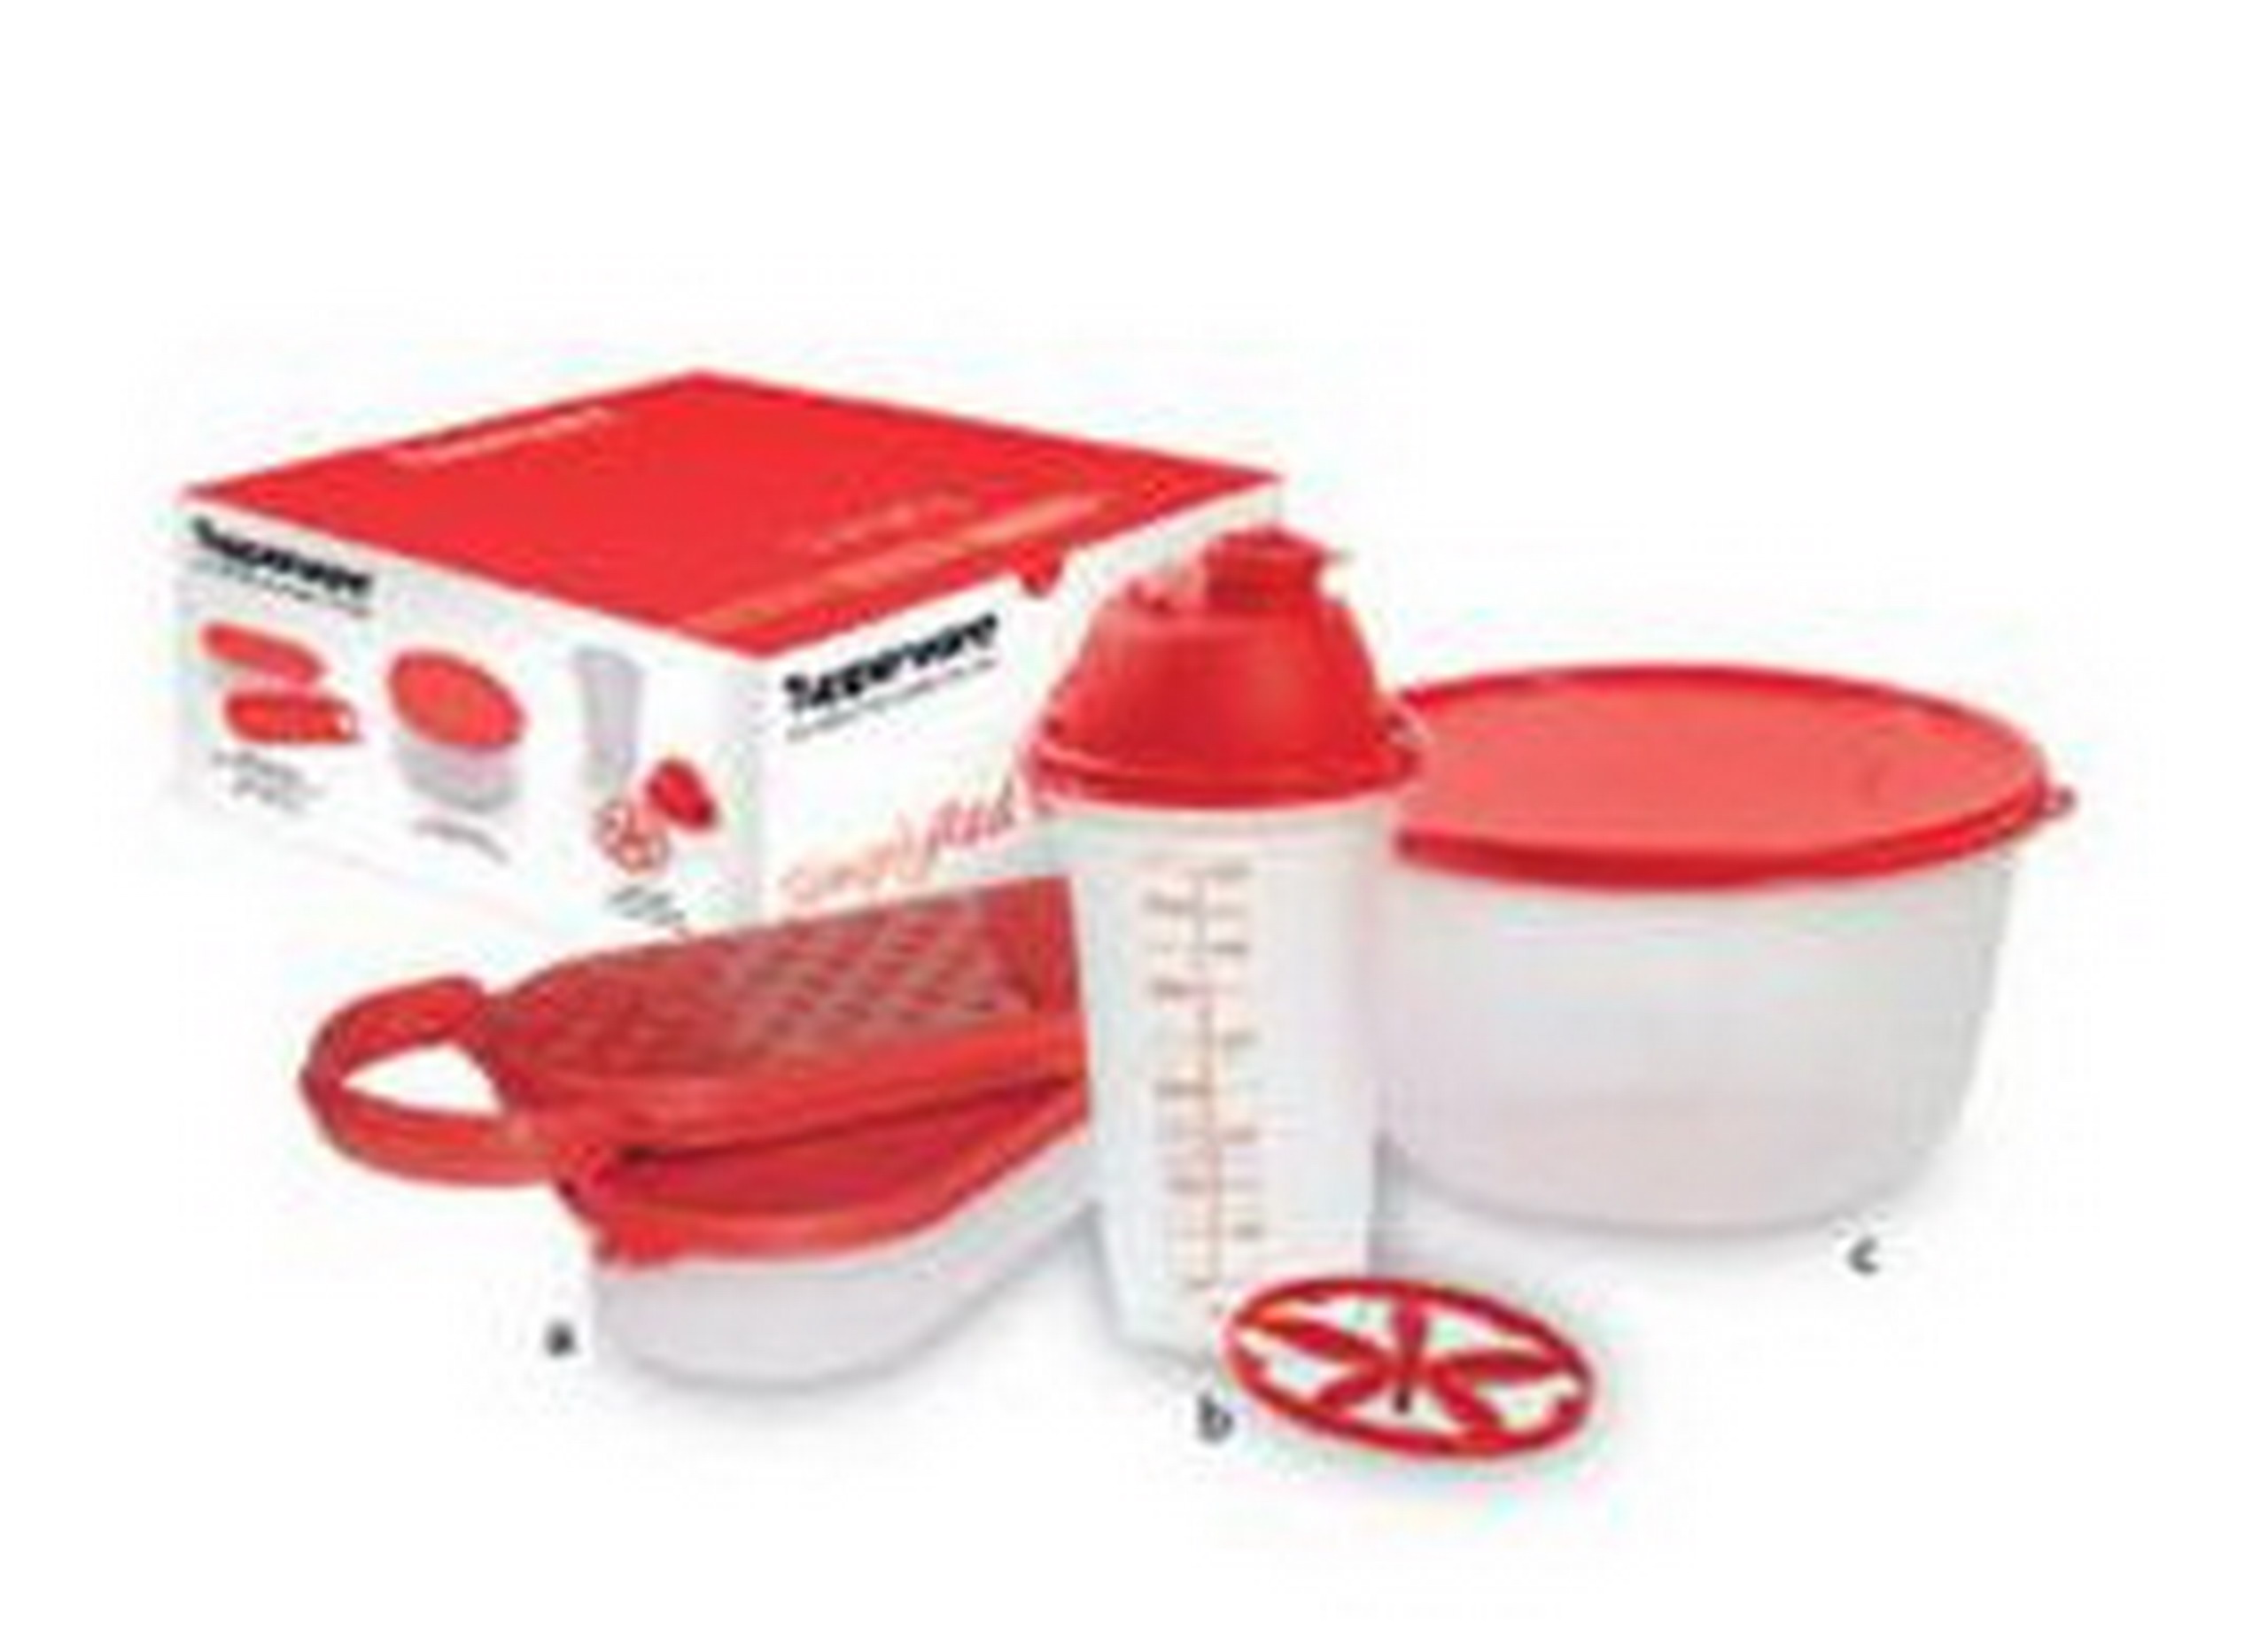 http://freetupperware.files.wordpress.com/2013/08/tupperware-simply-red.jpg